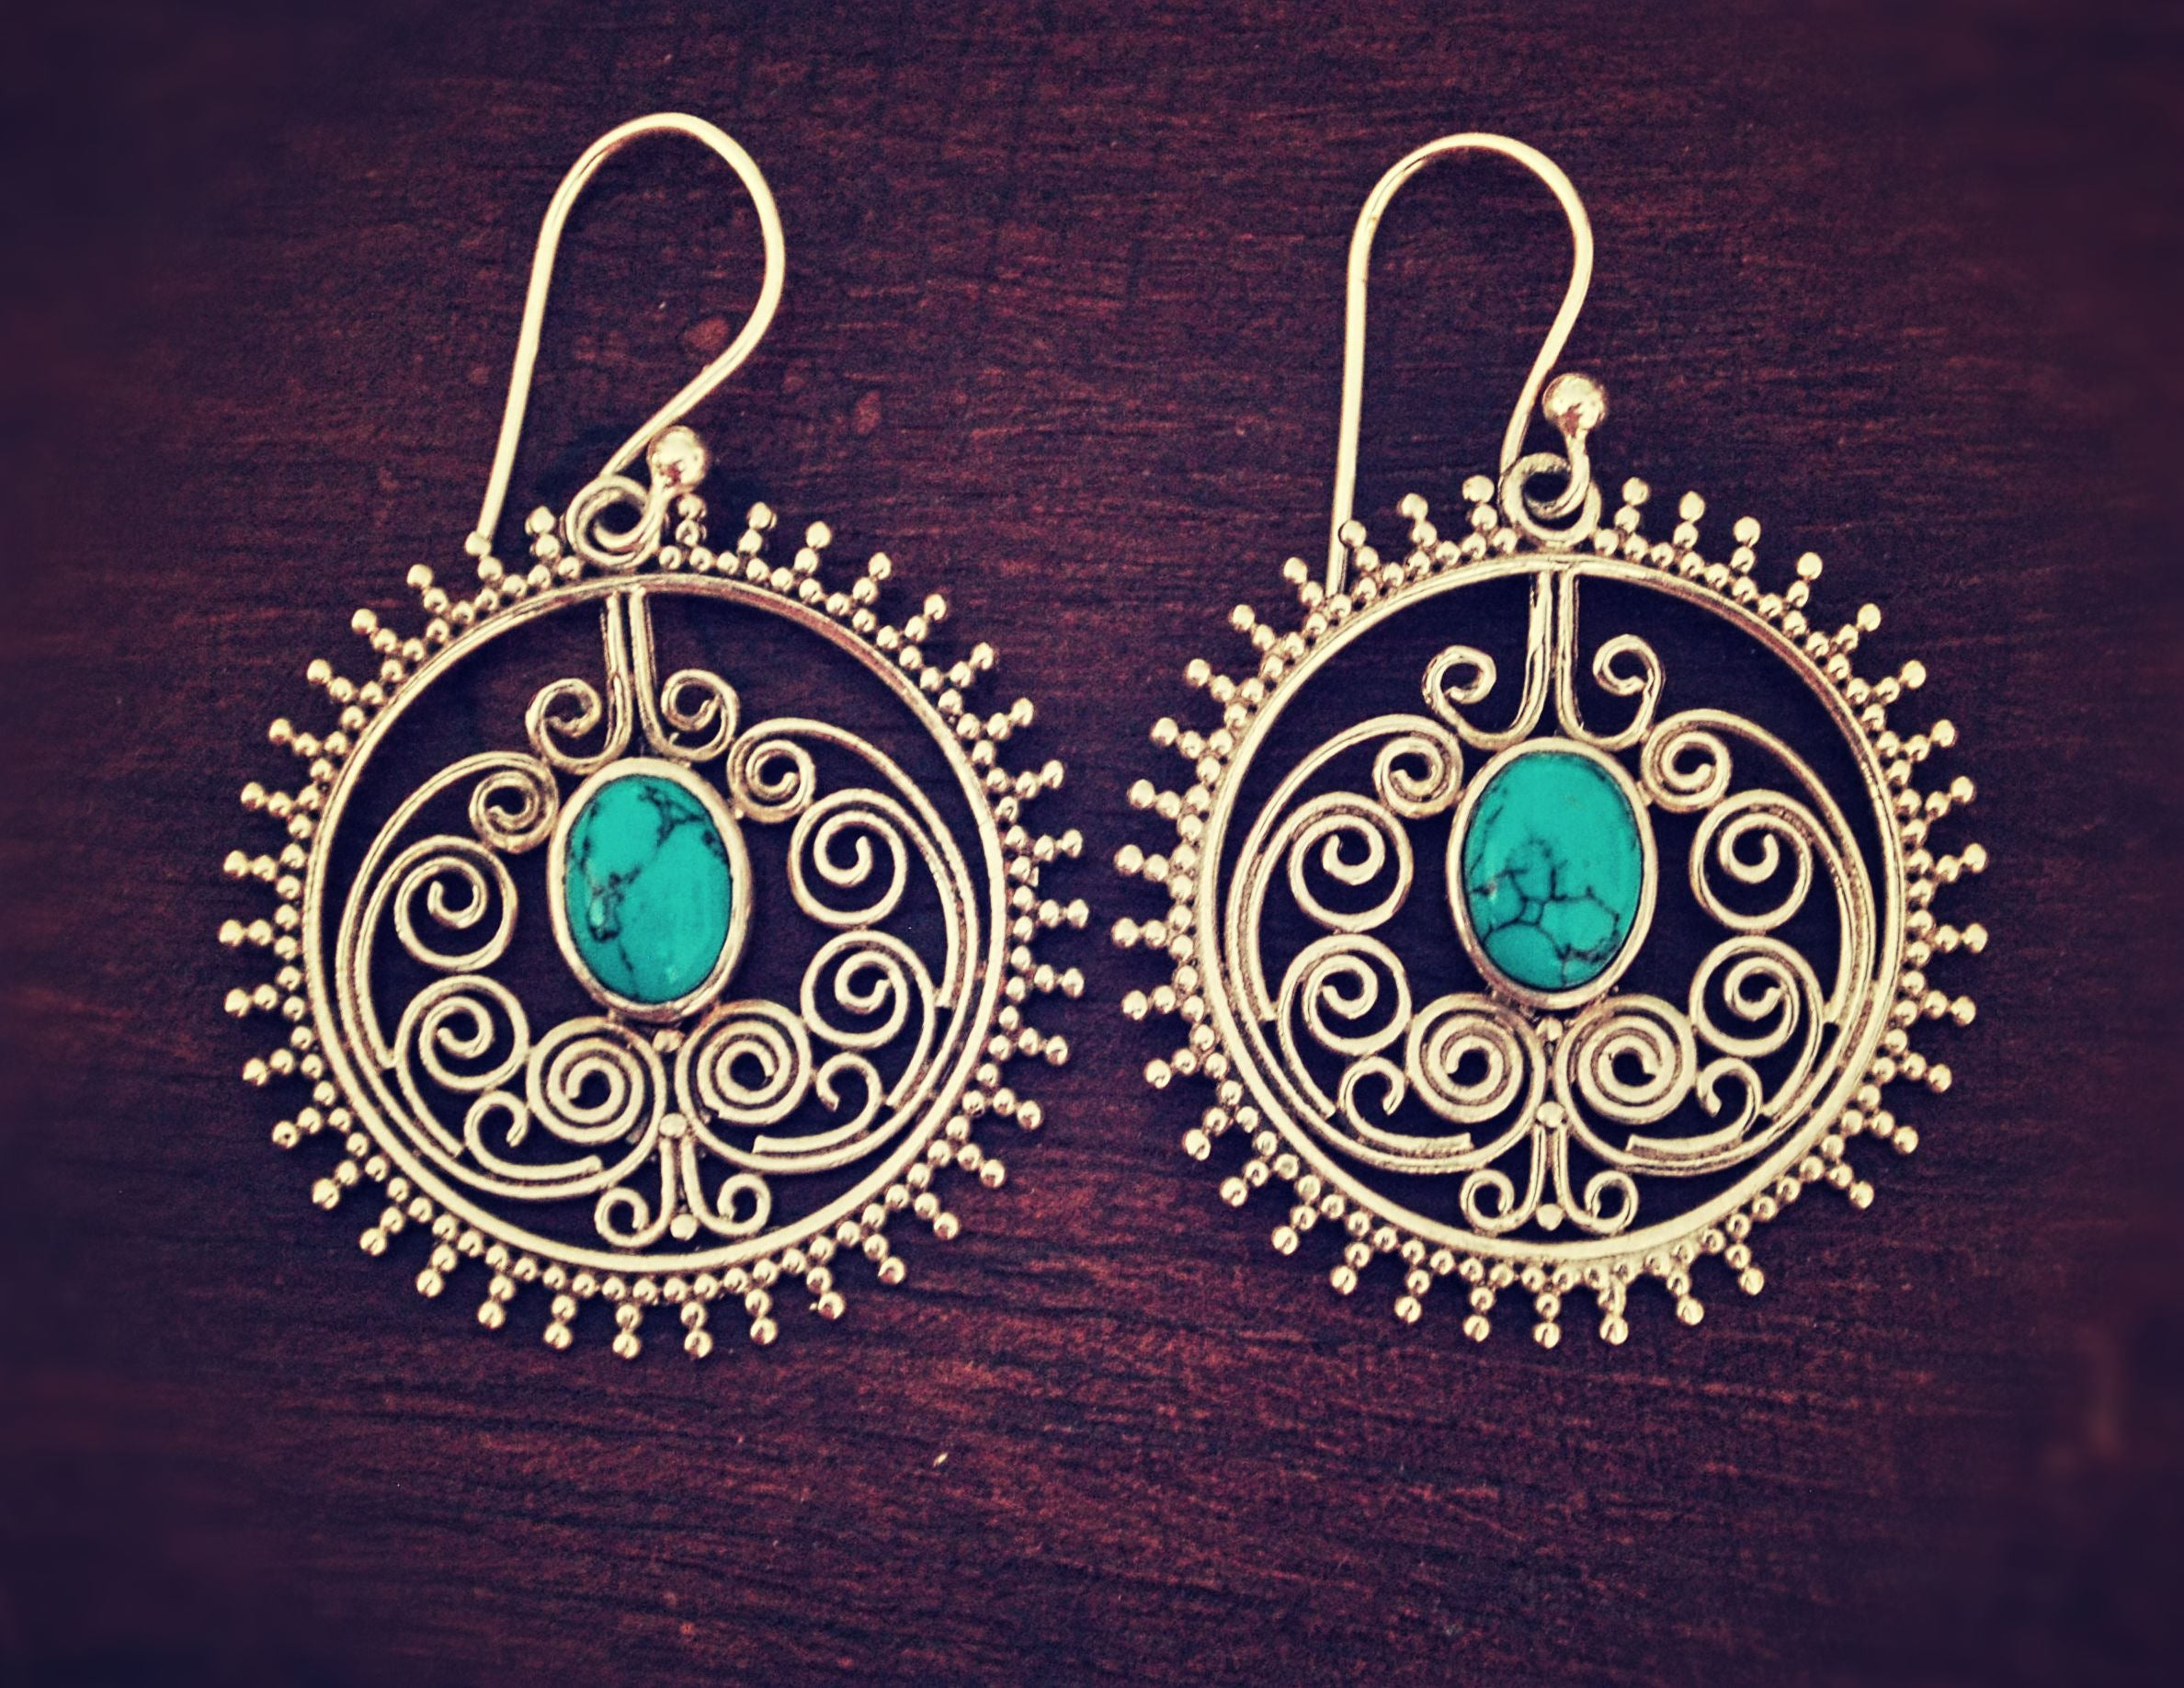 Ethnic Turquoise Earrings - Boho Turquoise Earrings